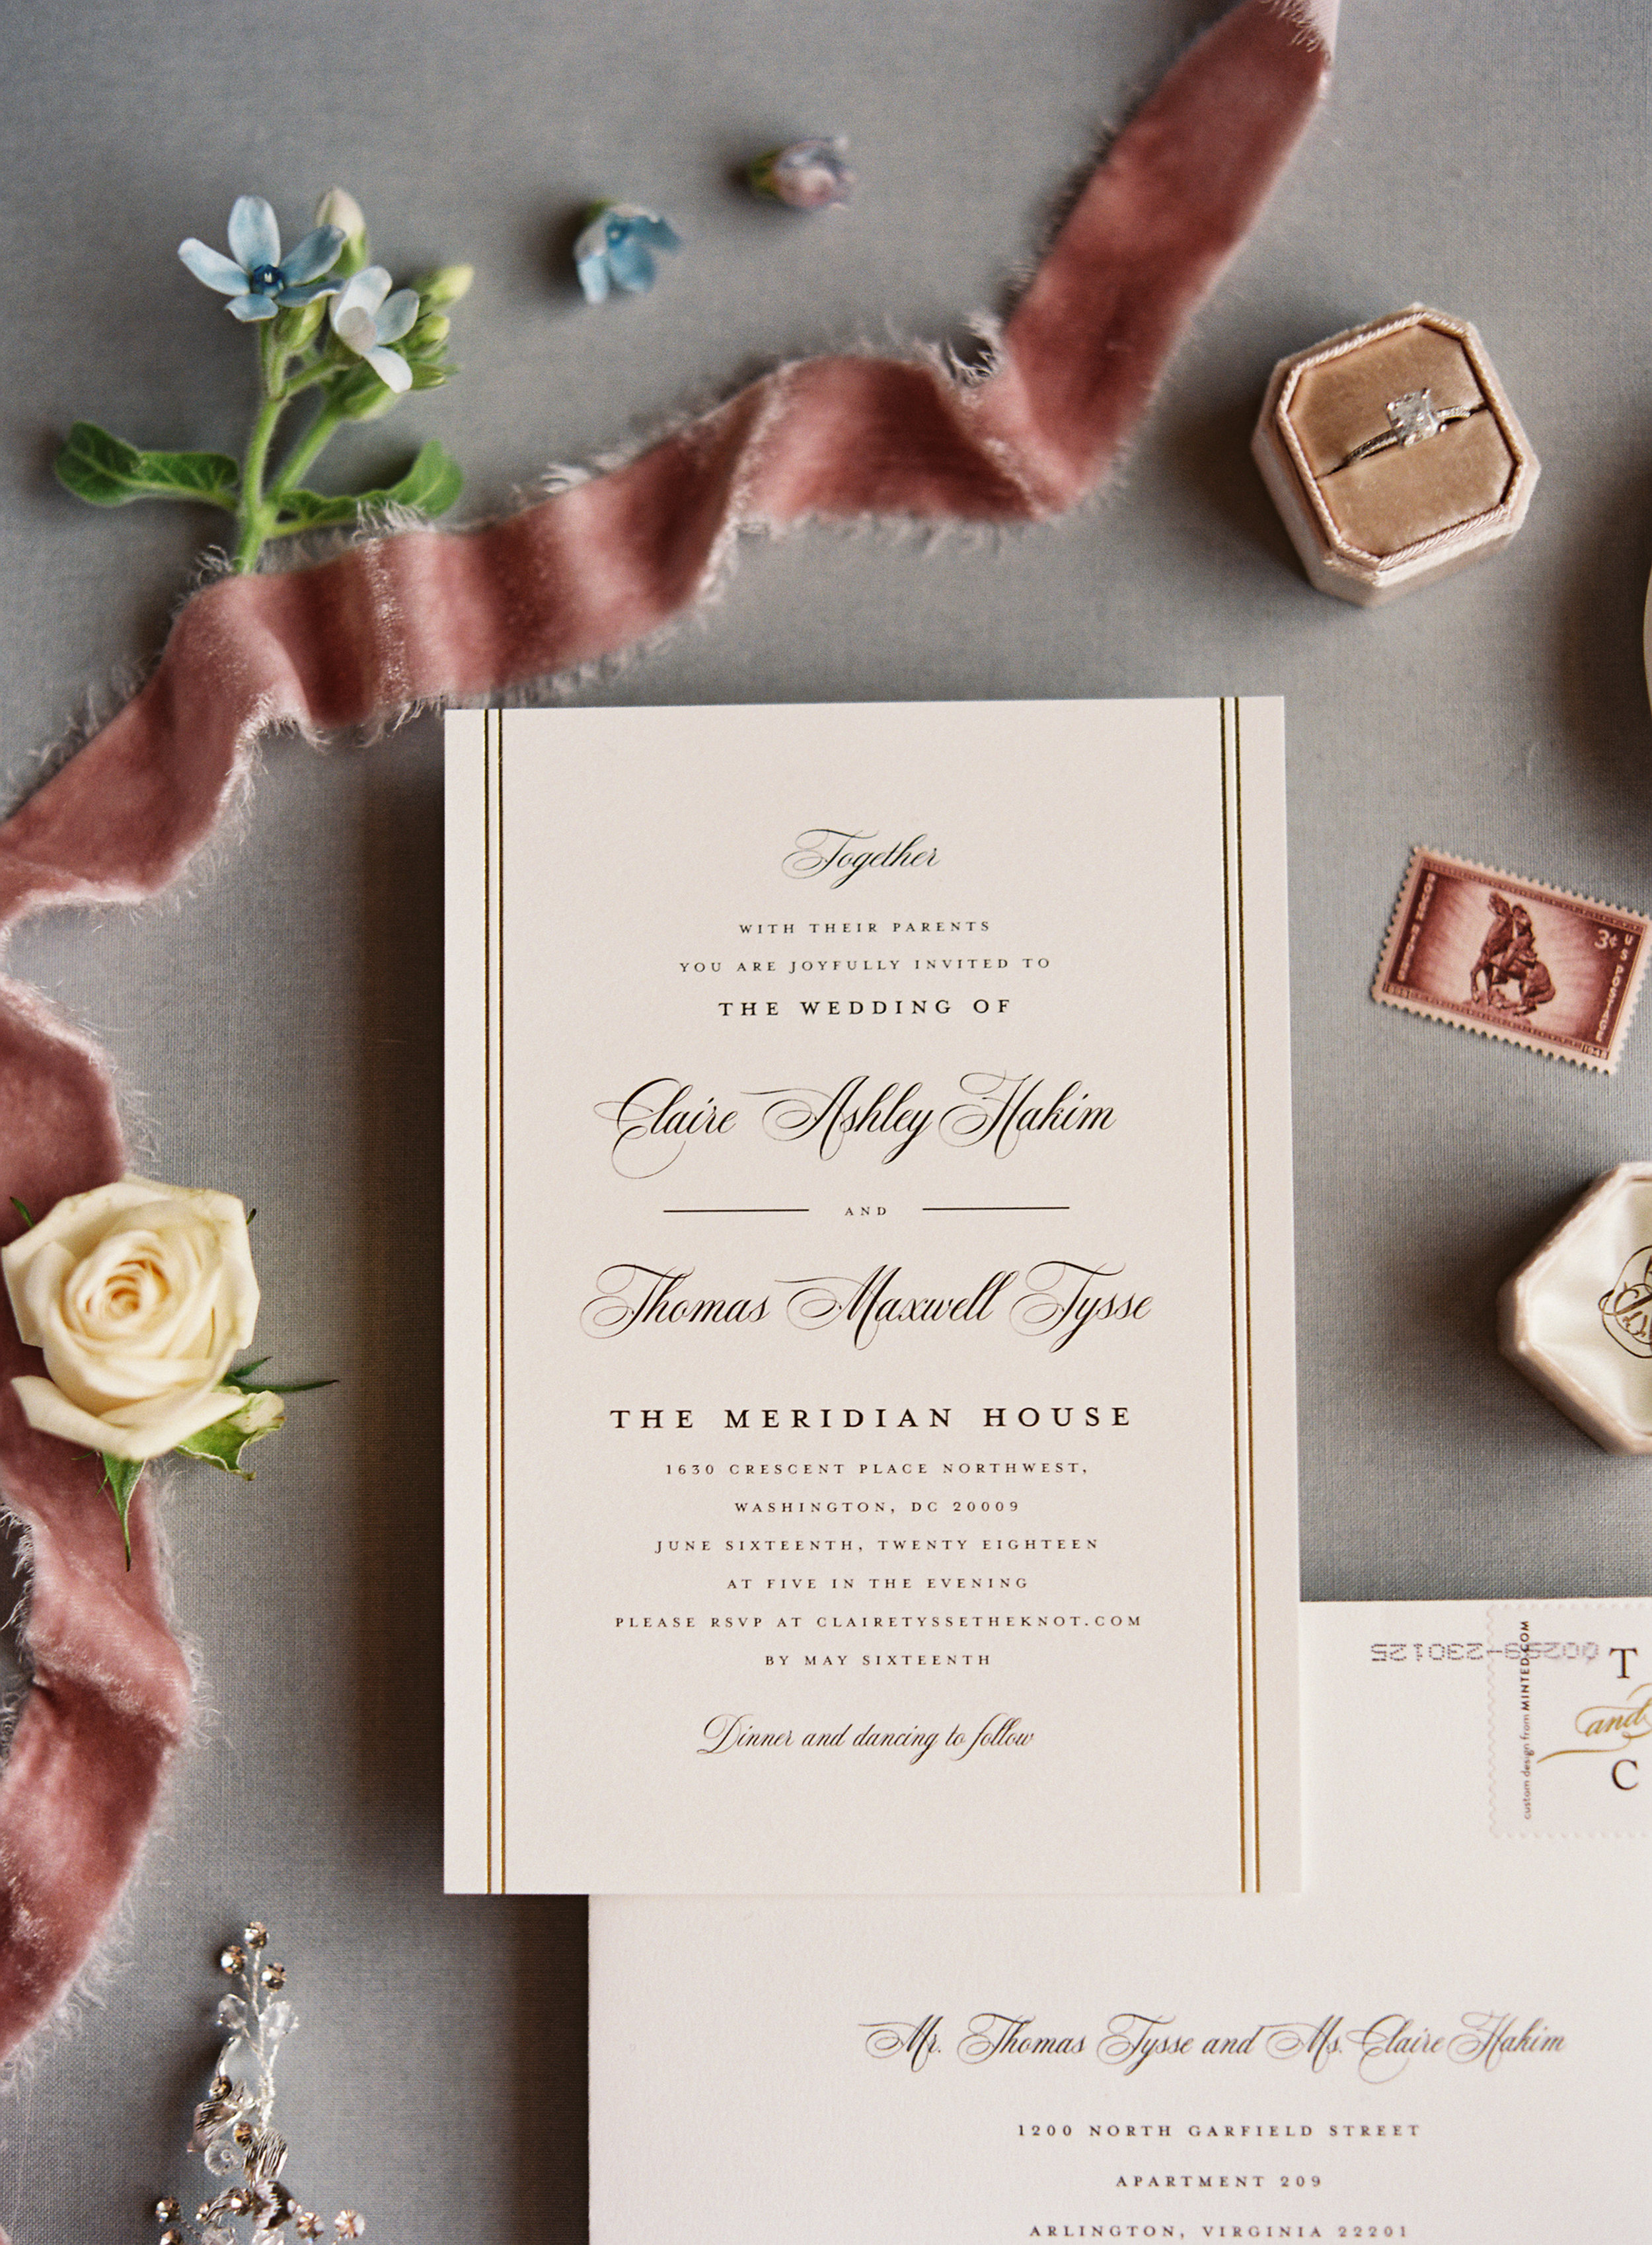 Claire and Tommy s Lovestory-Details Preparation-0001.jpg